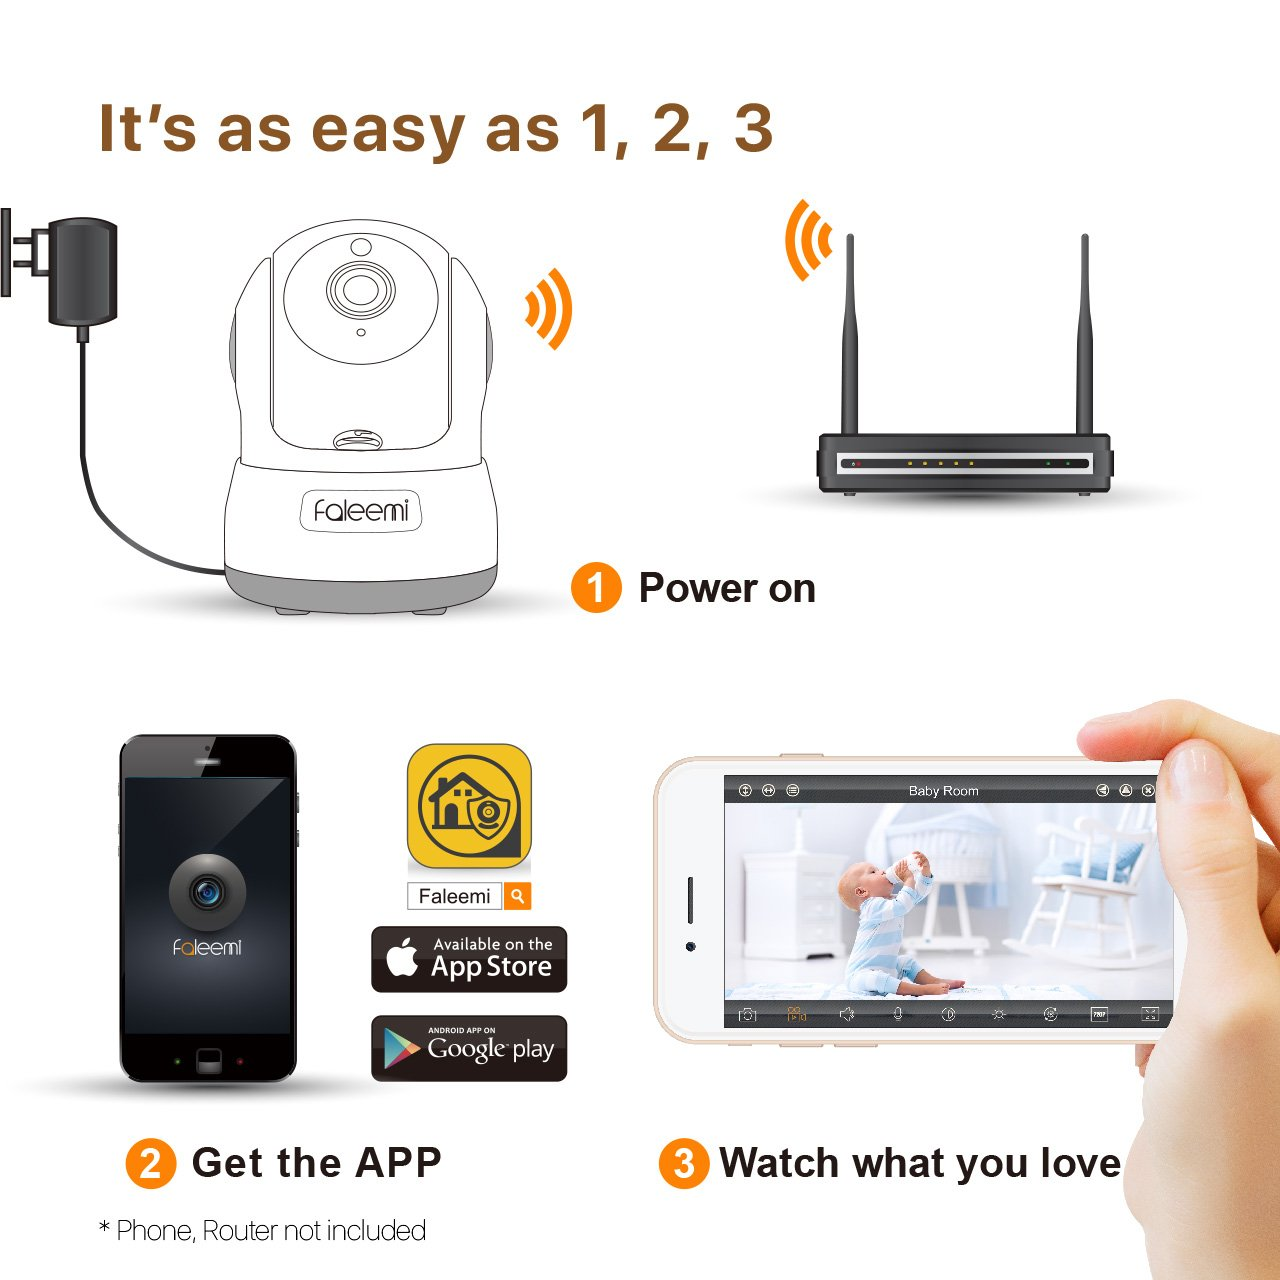 Faleemi HD Pan/Tilt Wireless WiFi IP Camera, Home Security Video Surveillance Camera with Two Way Audio, Night Vision for Baby/Elder/Pet/Office Monitor Nanny Cam FSC776W (White) by faleemi (Image #5)